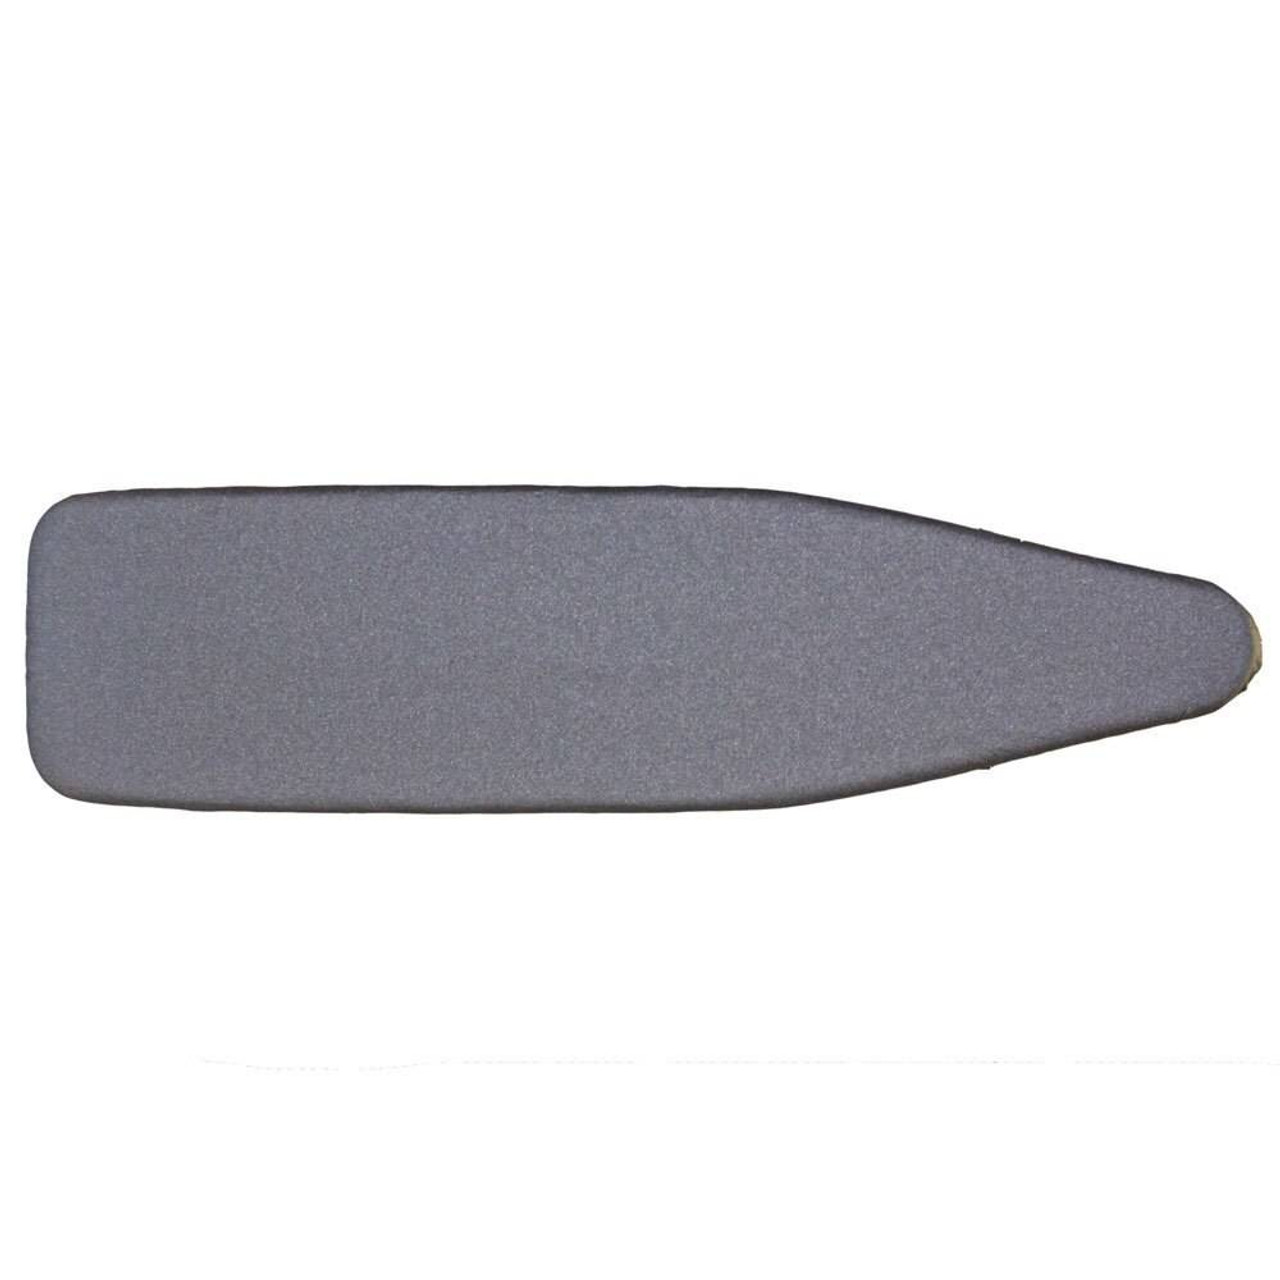 HOSPITALITY 1 SOURCE HOSPITALITY 1 SOURCE or THE UNIVERSAL or REPLACEMENT BUNGEE ELASTIC or IRONING BOARDS and COVERS or CHARCOAL or 12 PER CASE